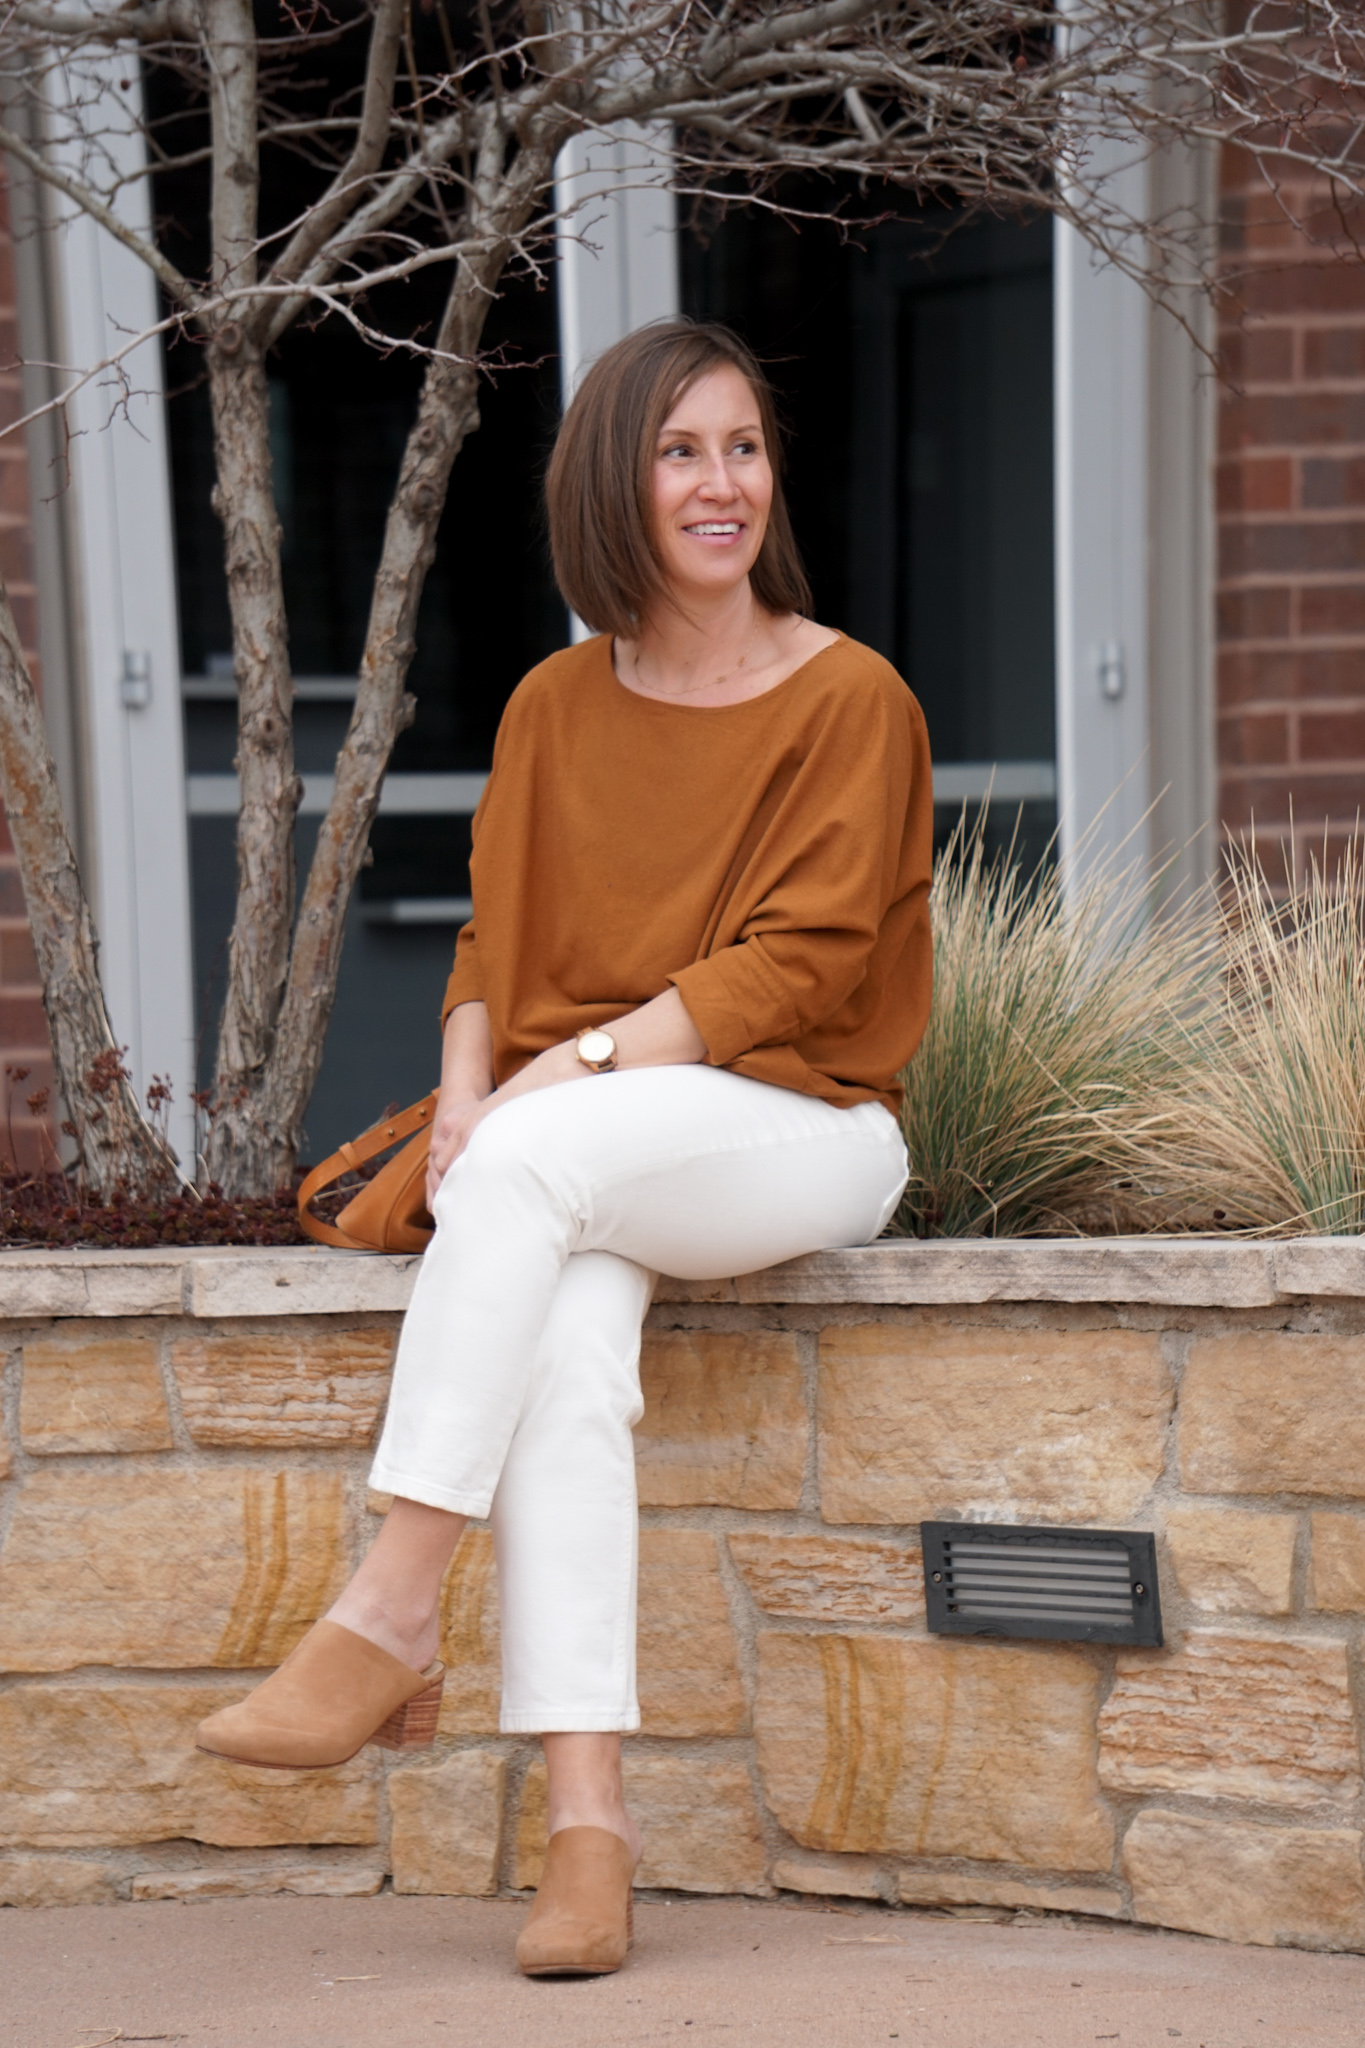 Cool Weather Orange Top White Pants Look // Week Of Outfits With Paige Marchi On The Good Trade